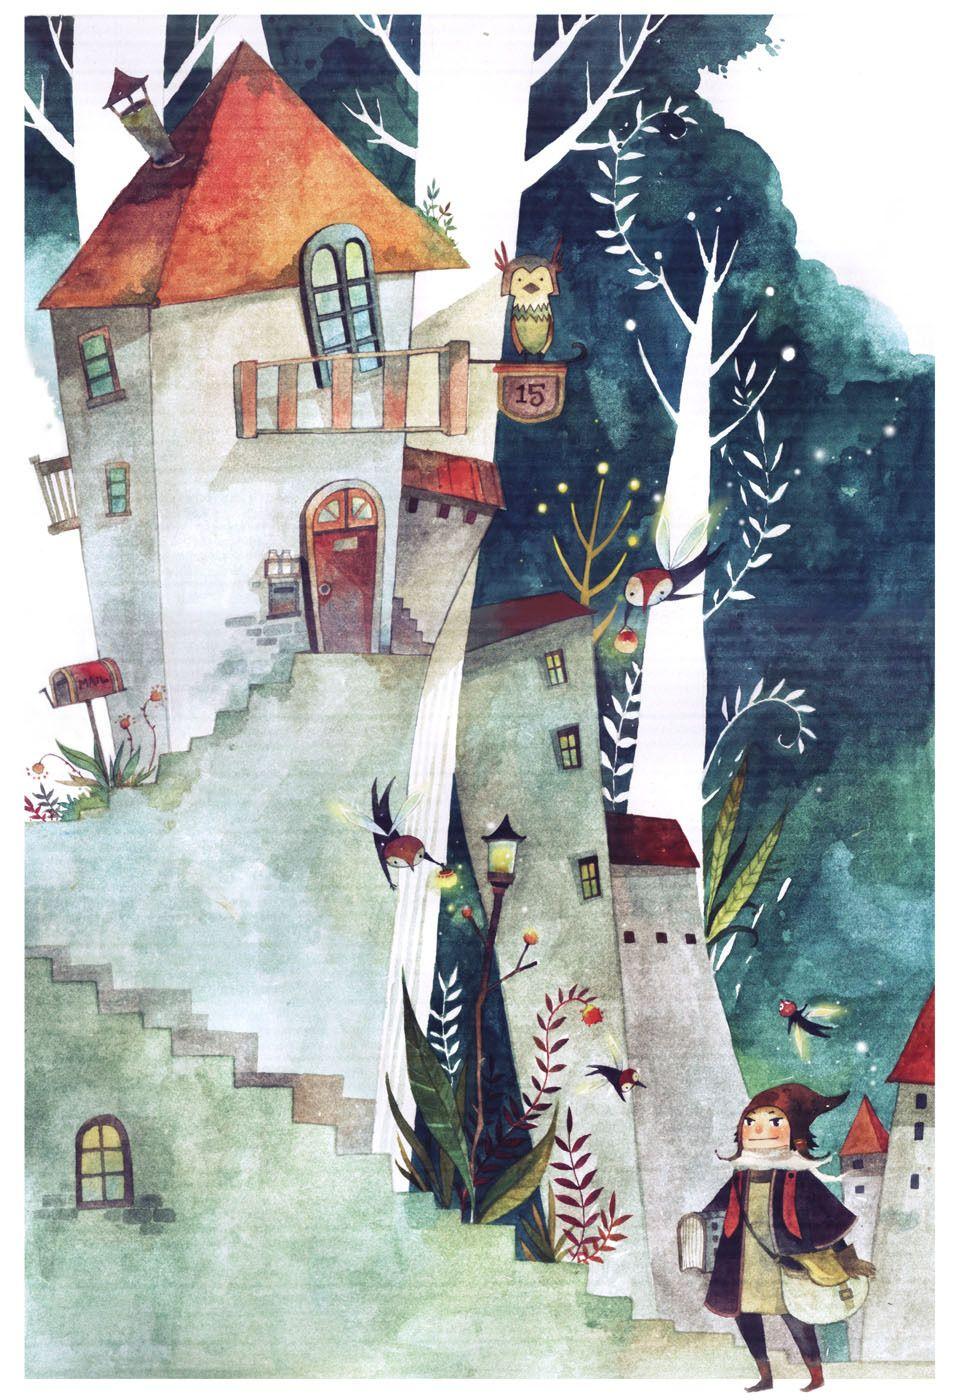 Mae Besom Illustration Watercolor Illustration